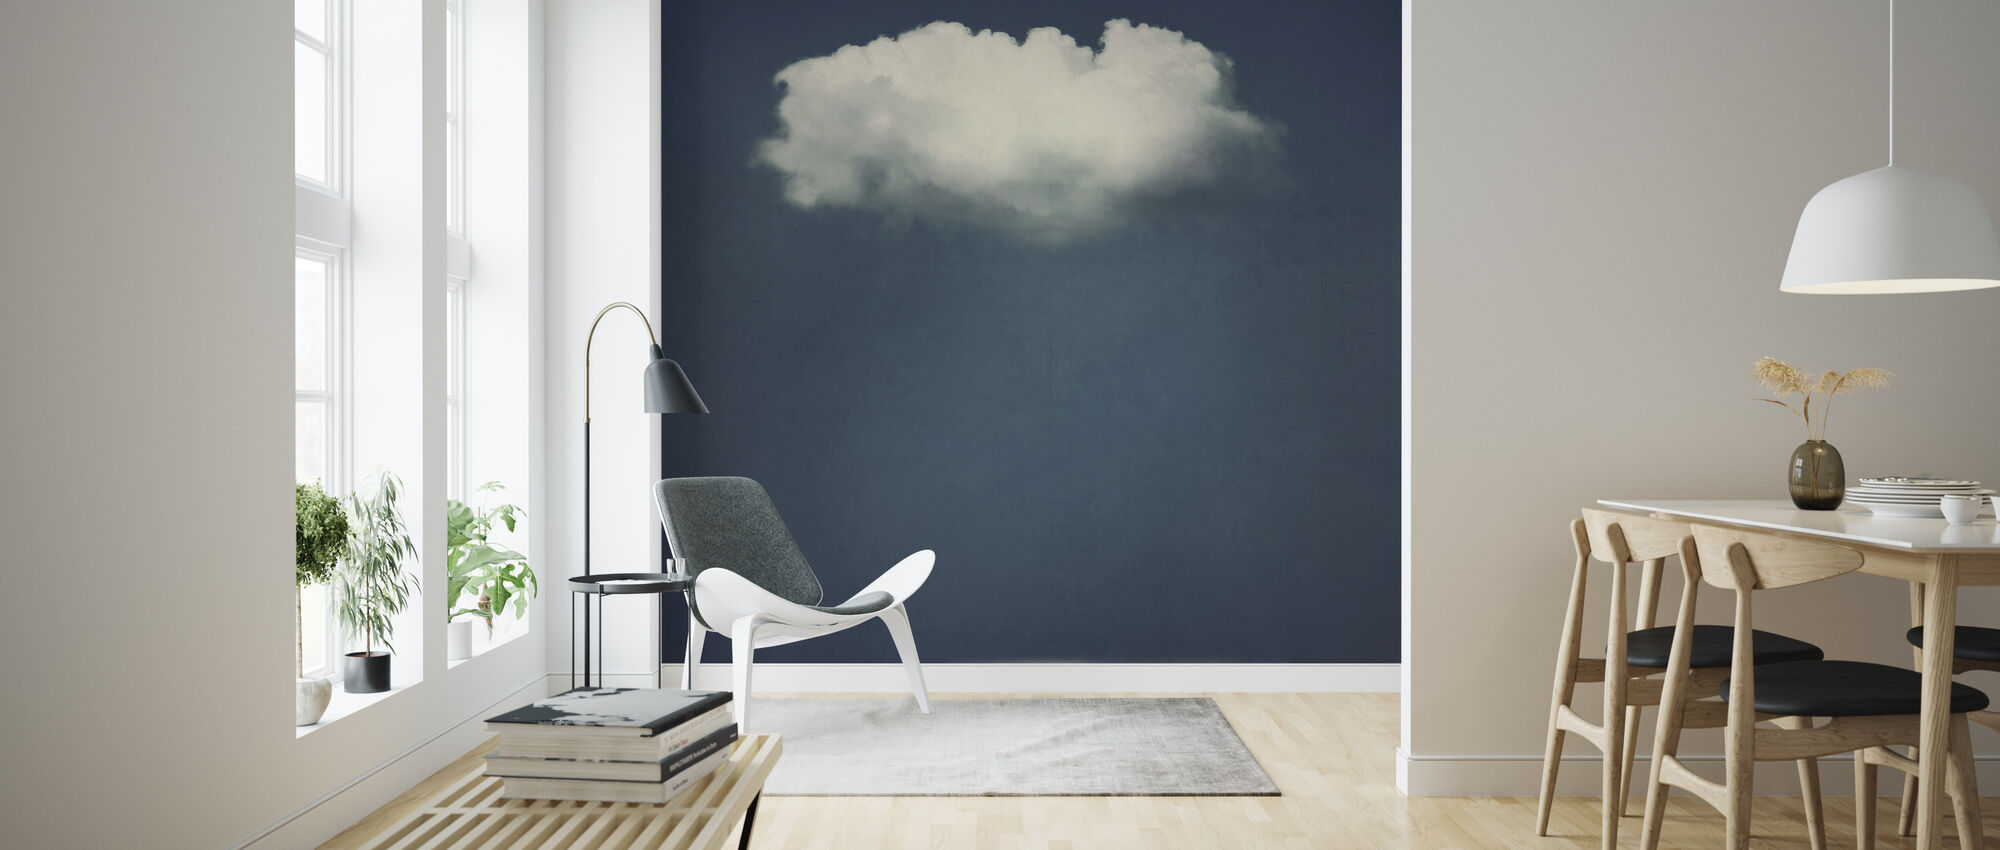 Solo Cloud - Behang - Woonkamer